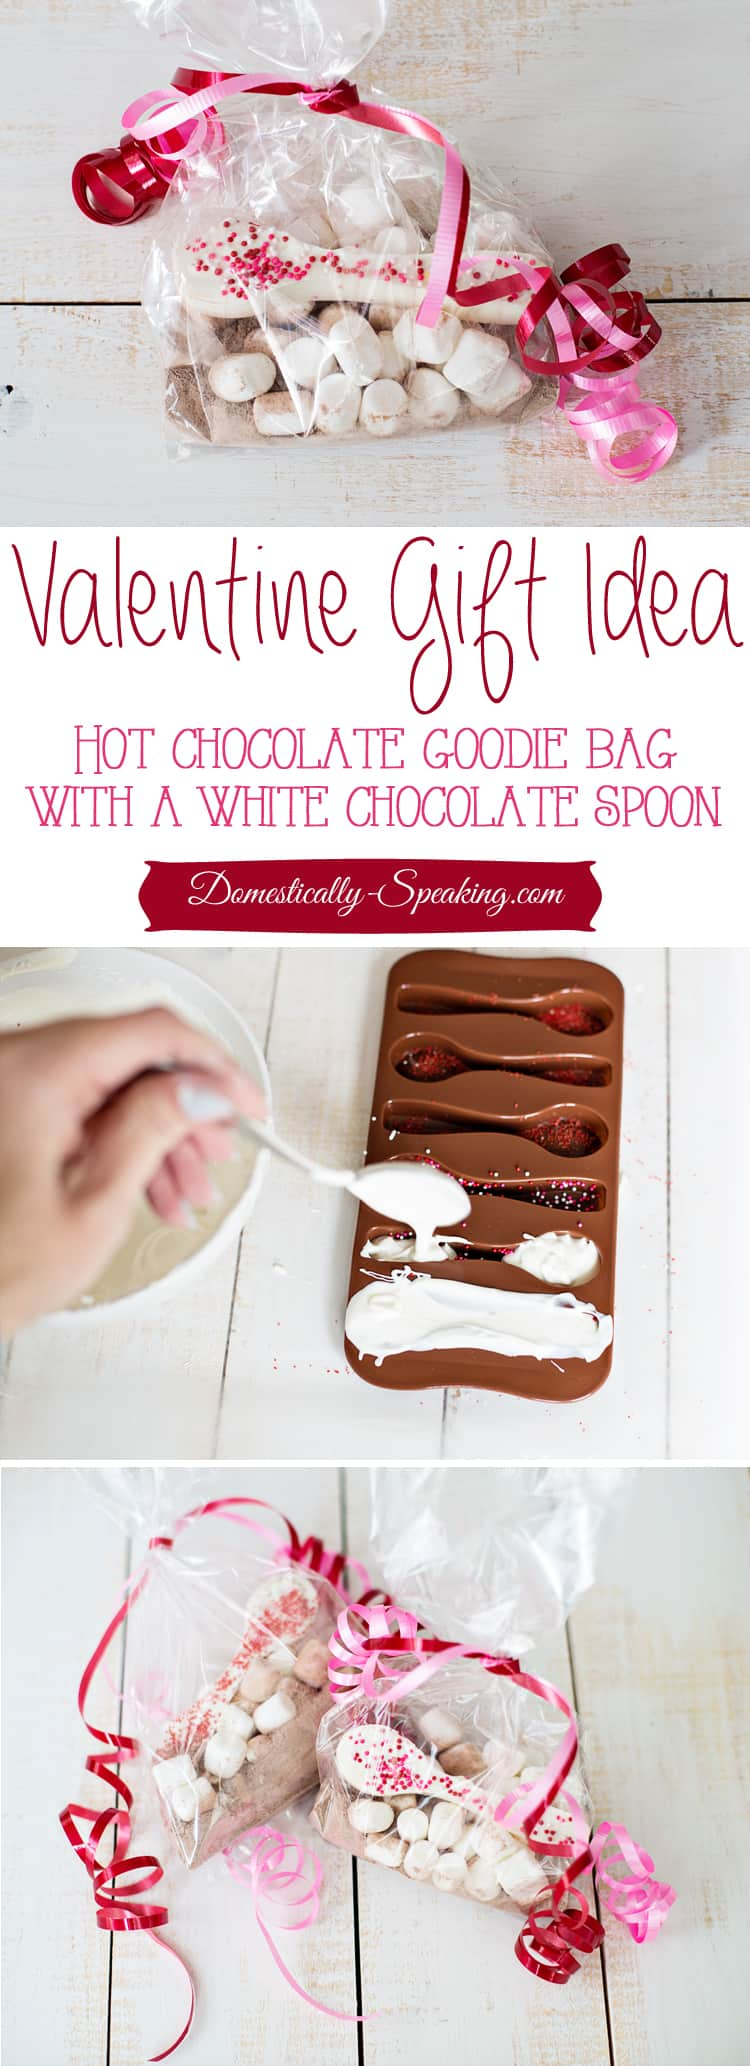 Valentine Gift Idea Hot Chocolate Gift Bag with White Chocolate Spoons with Sprinkles and mini Marshmallows